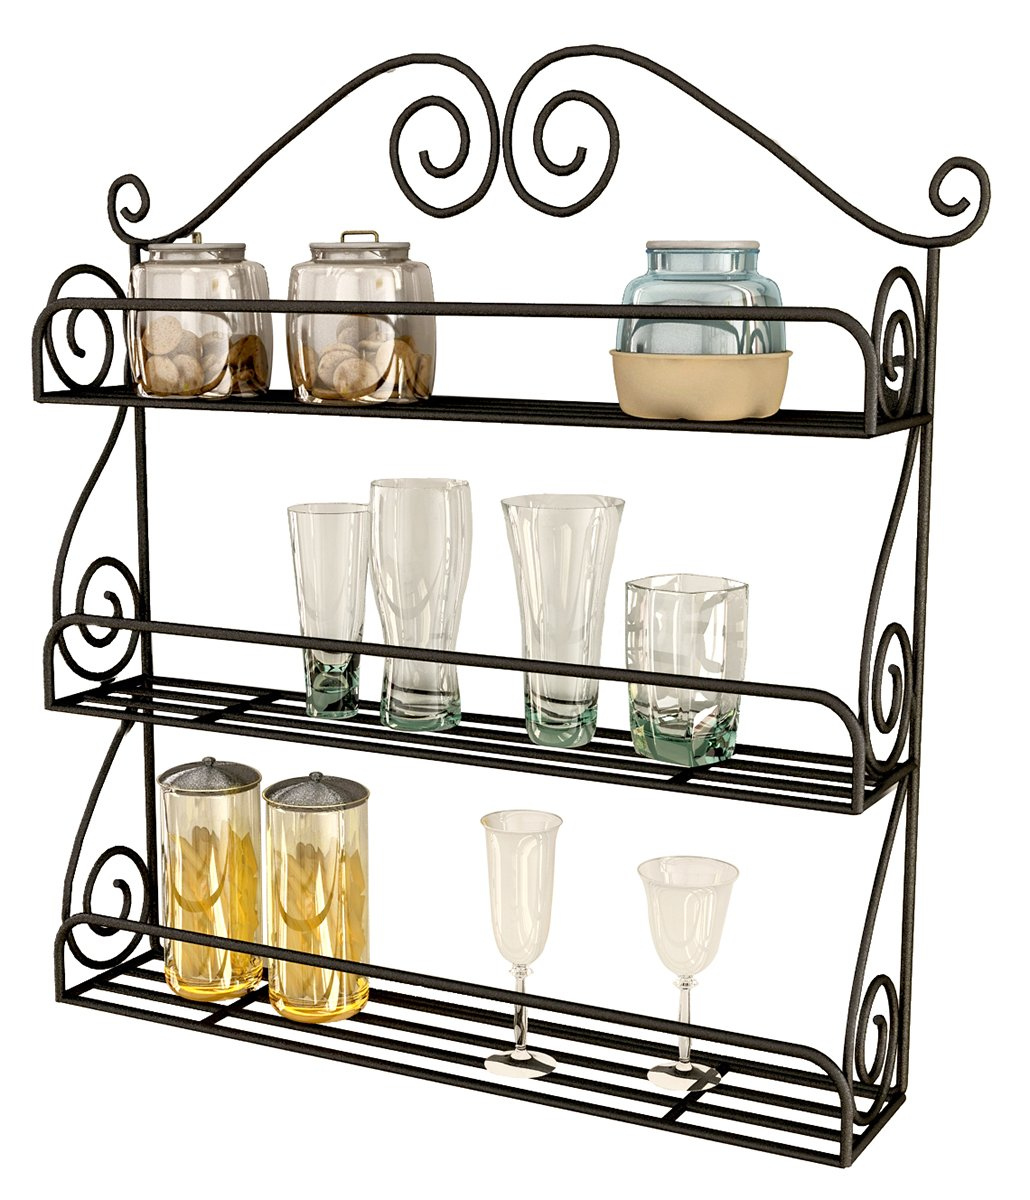 Home Sparkle Mild Steel Kitchen Rack (Black): Amazon.in: Home U0026 Kitchen